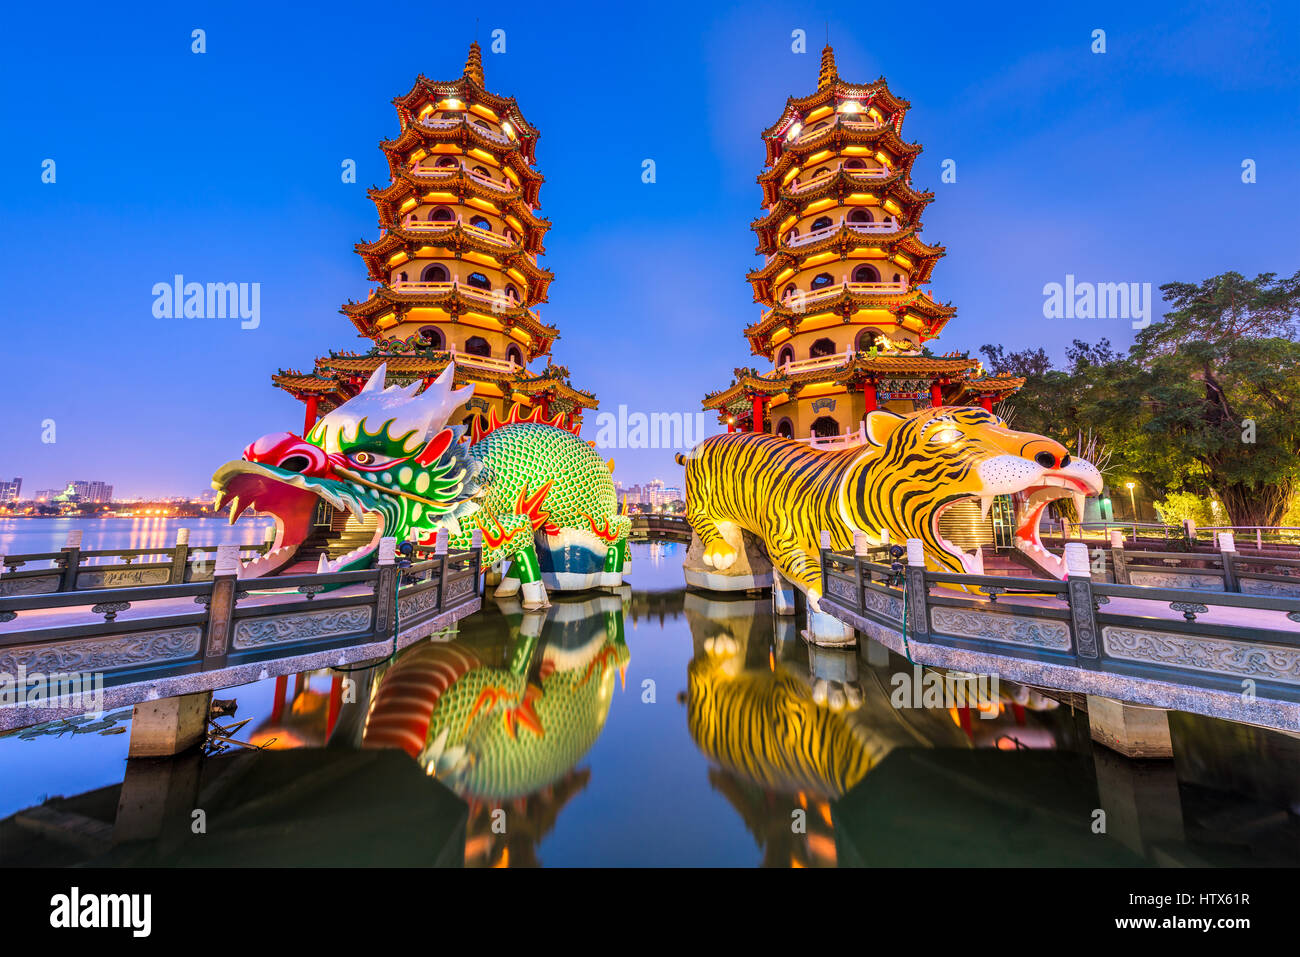 Kaohsiung, Taiwan Lotus Pond's Dragon and Tiger Pagodas at night. - Stock Image